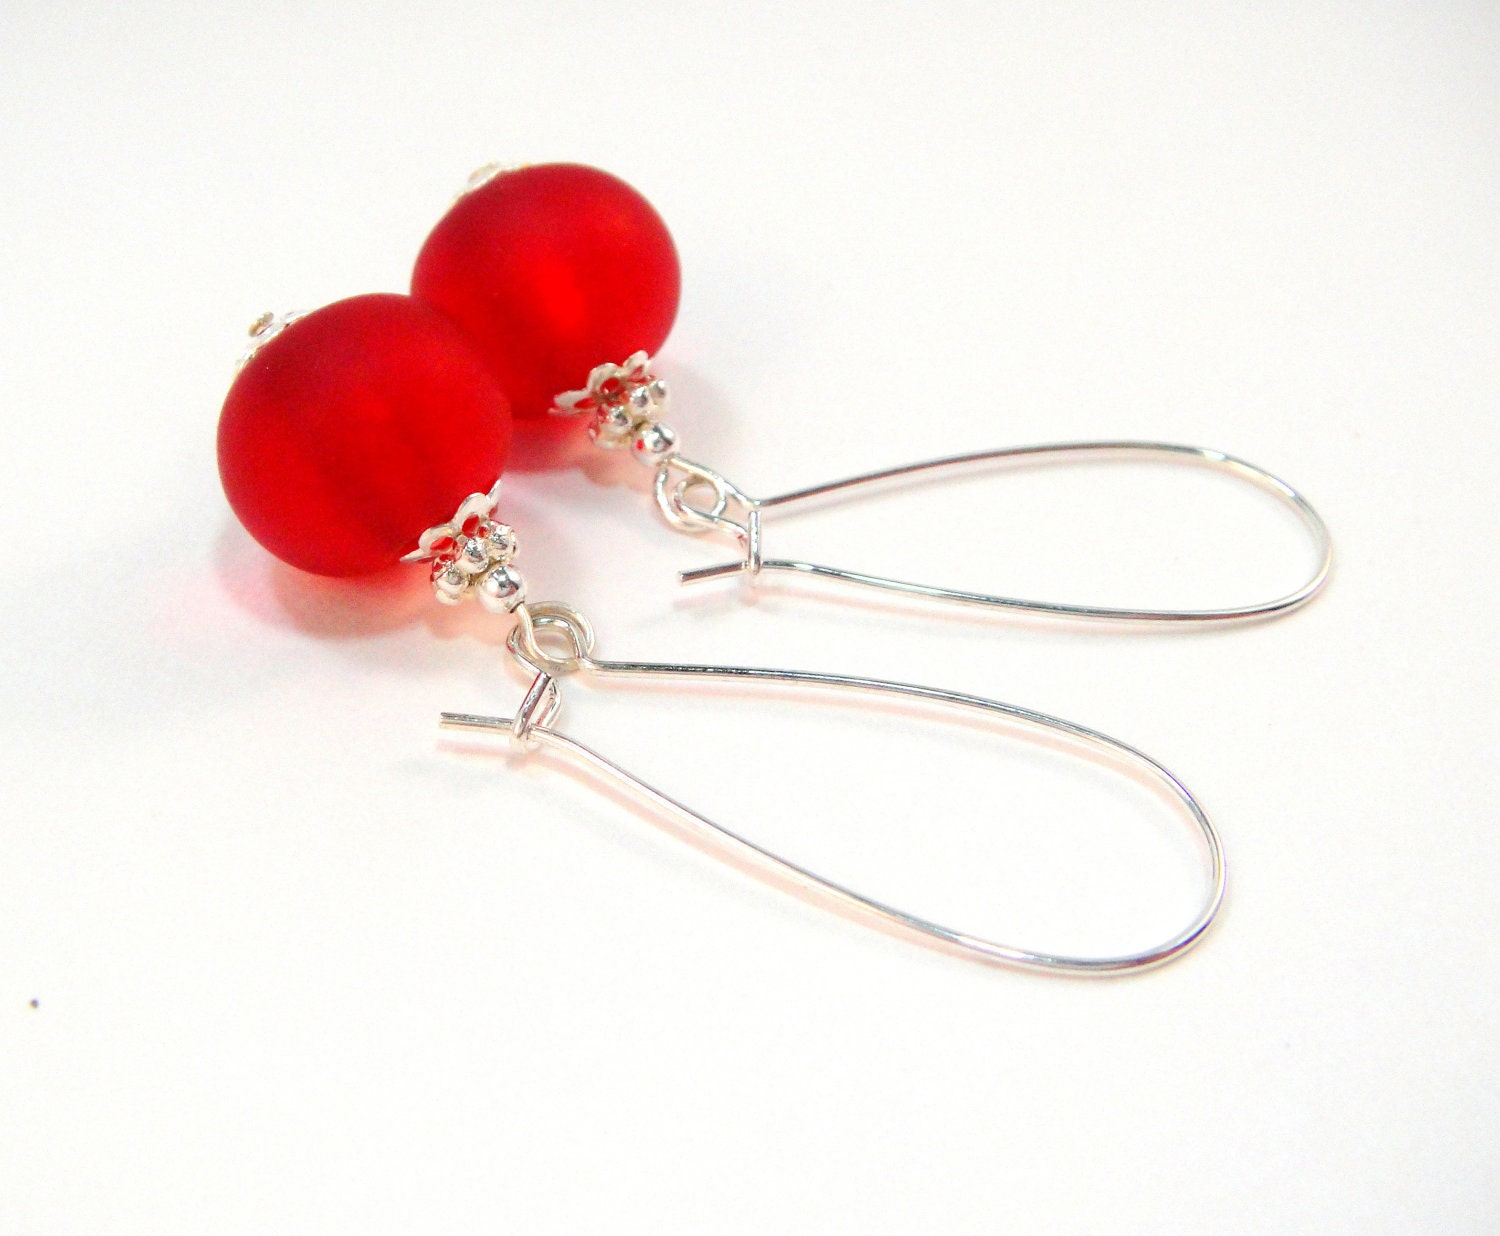 Red Earrings, Silver Earrings with Red Matte Sea Glass and Silver Accent Dangles - Cherry Red Dangle